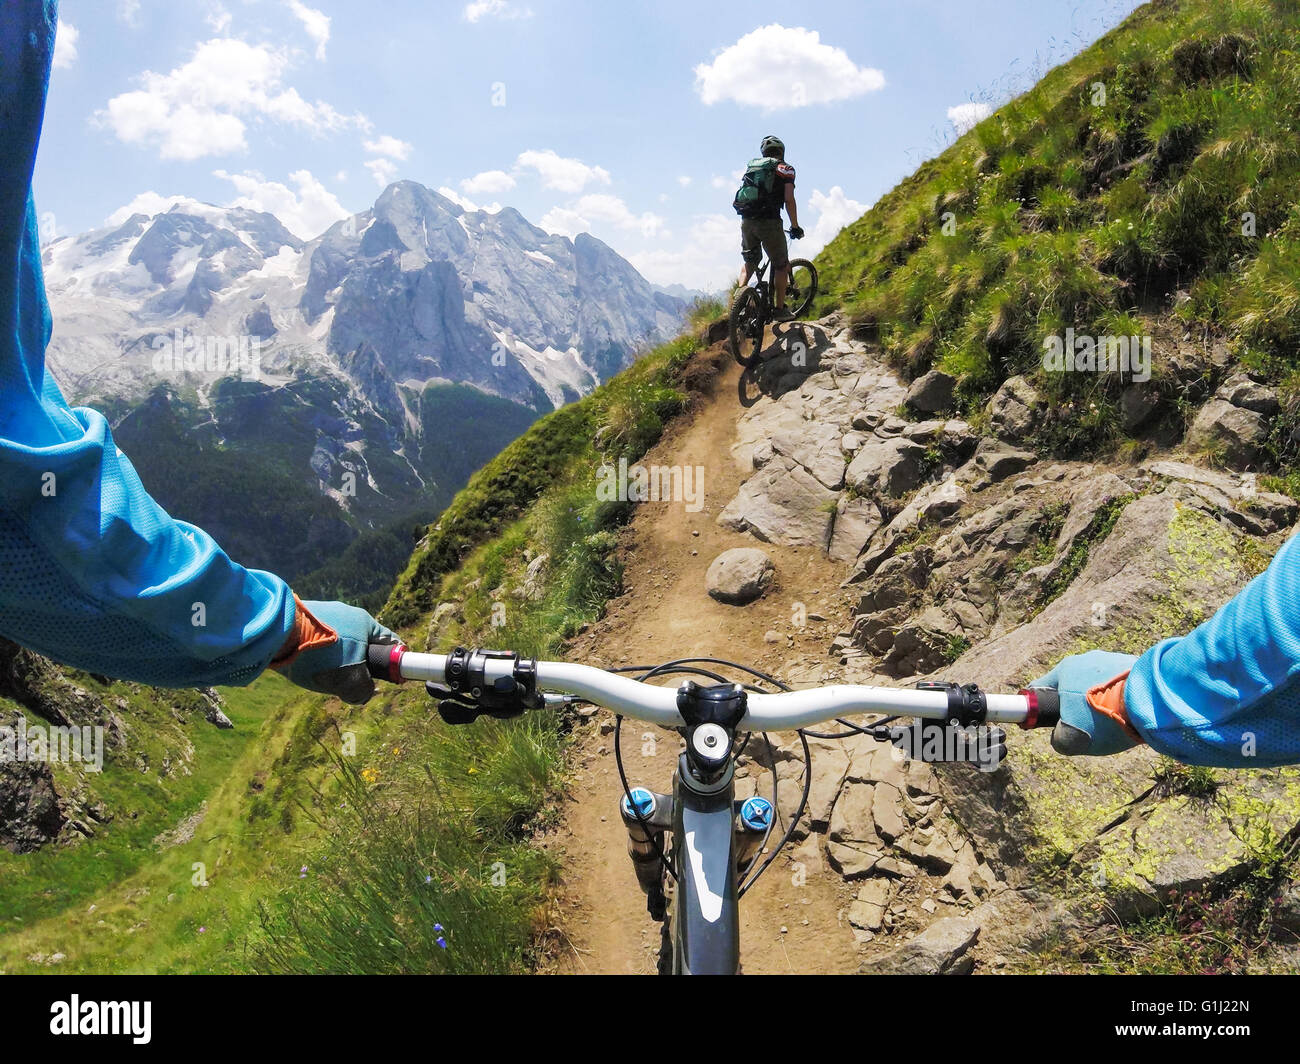 Two men mountain biking, Dolomites, Italy - Stock Image